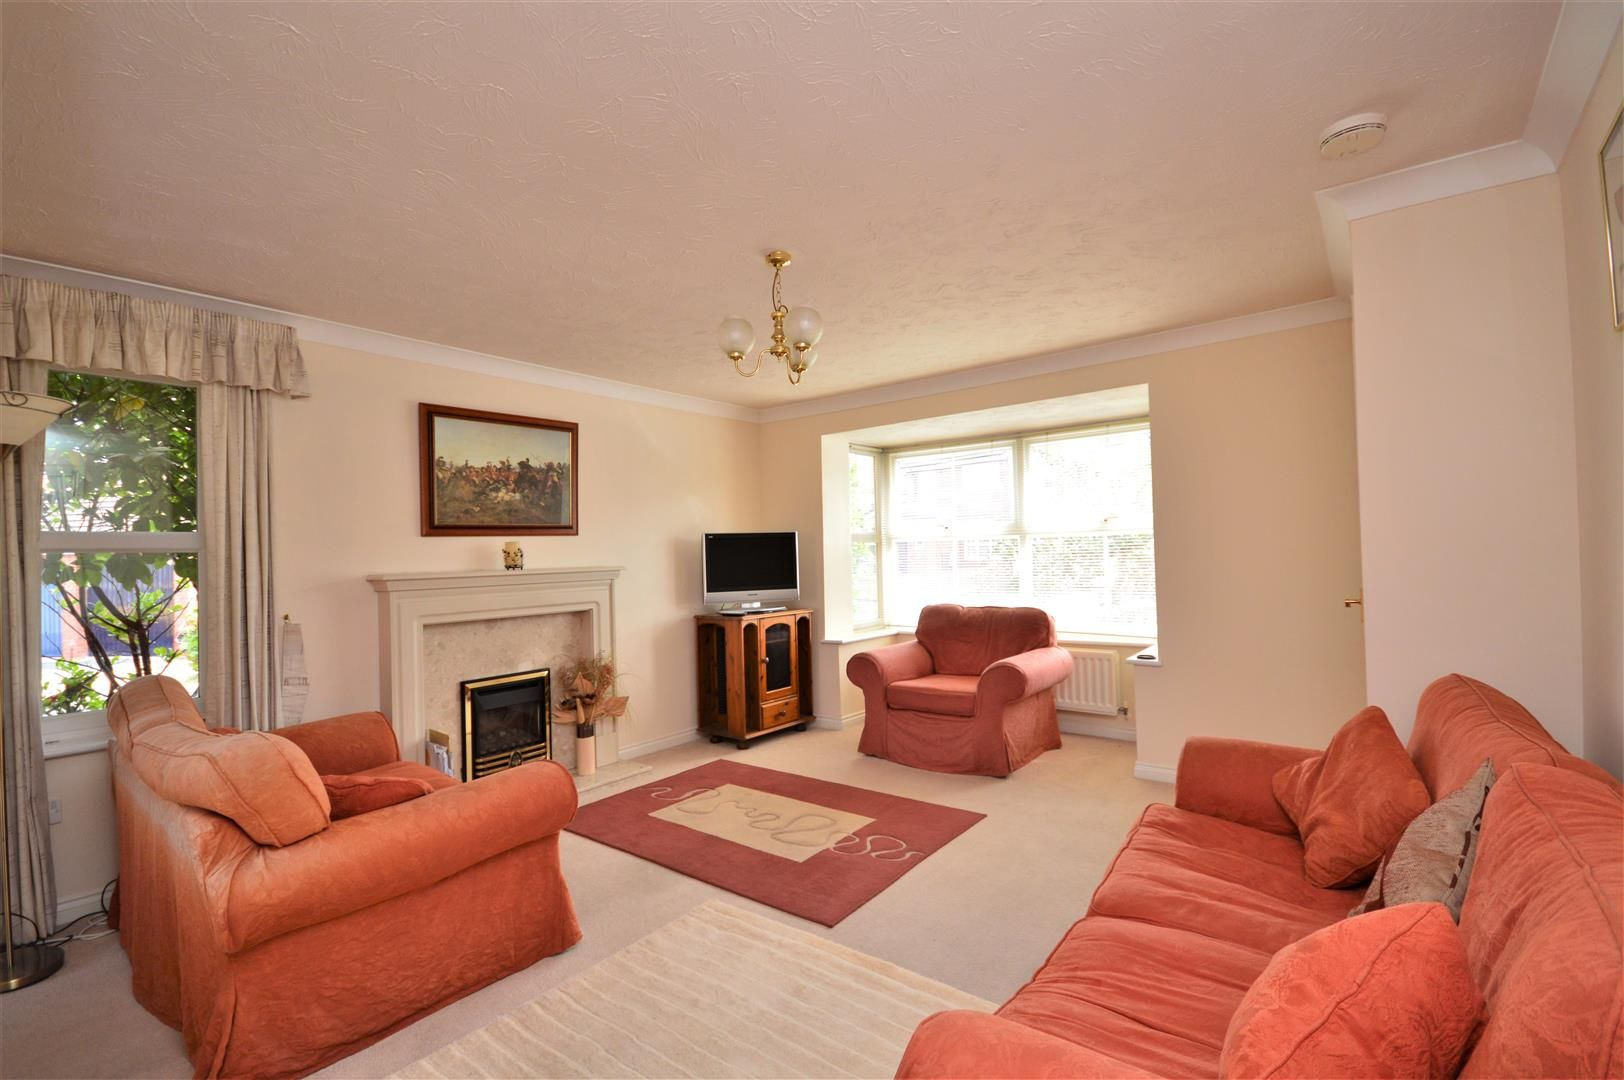 4 bed detached for sale in Belmont 3